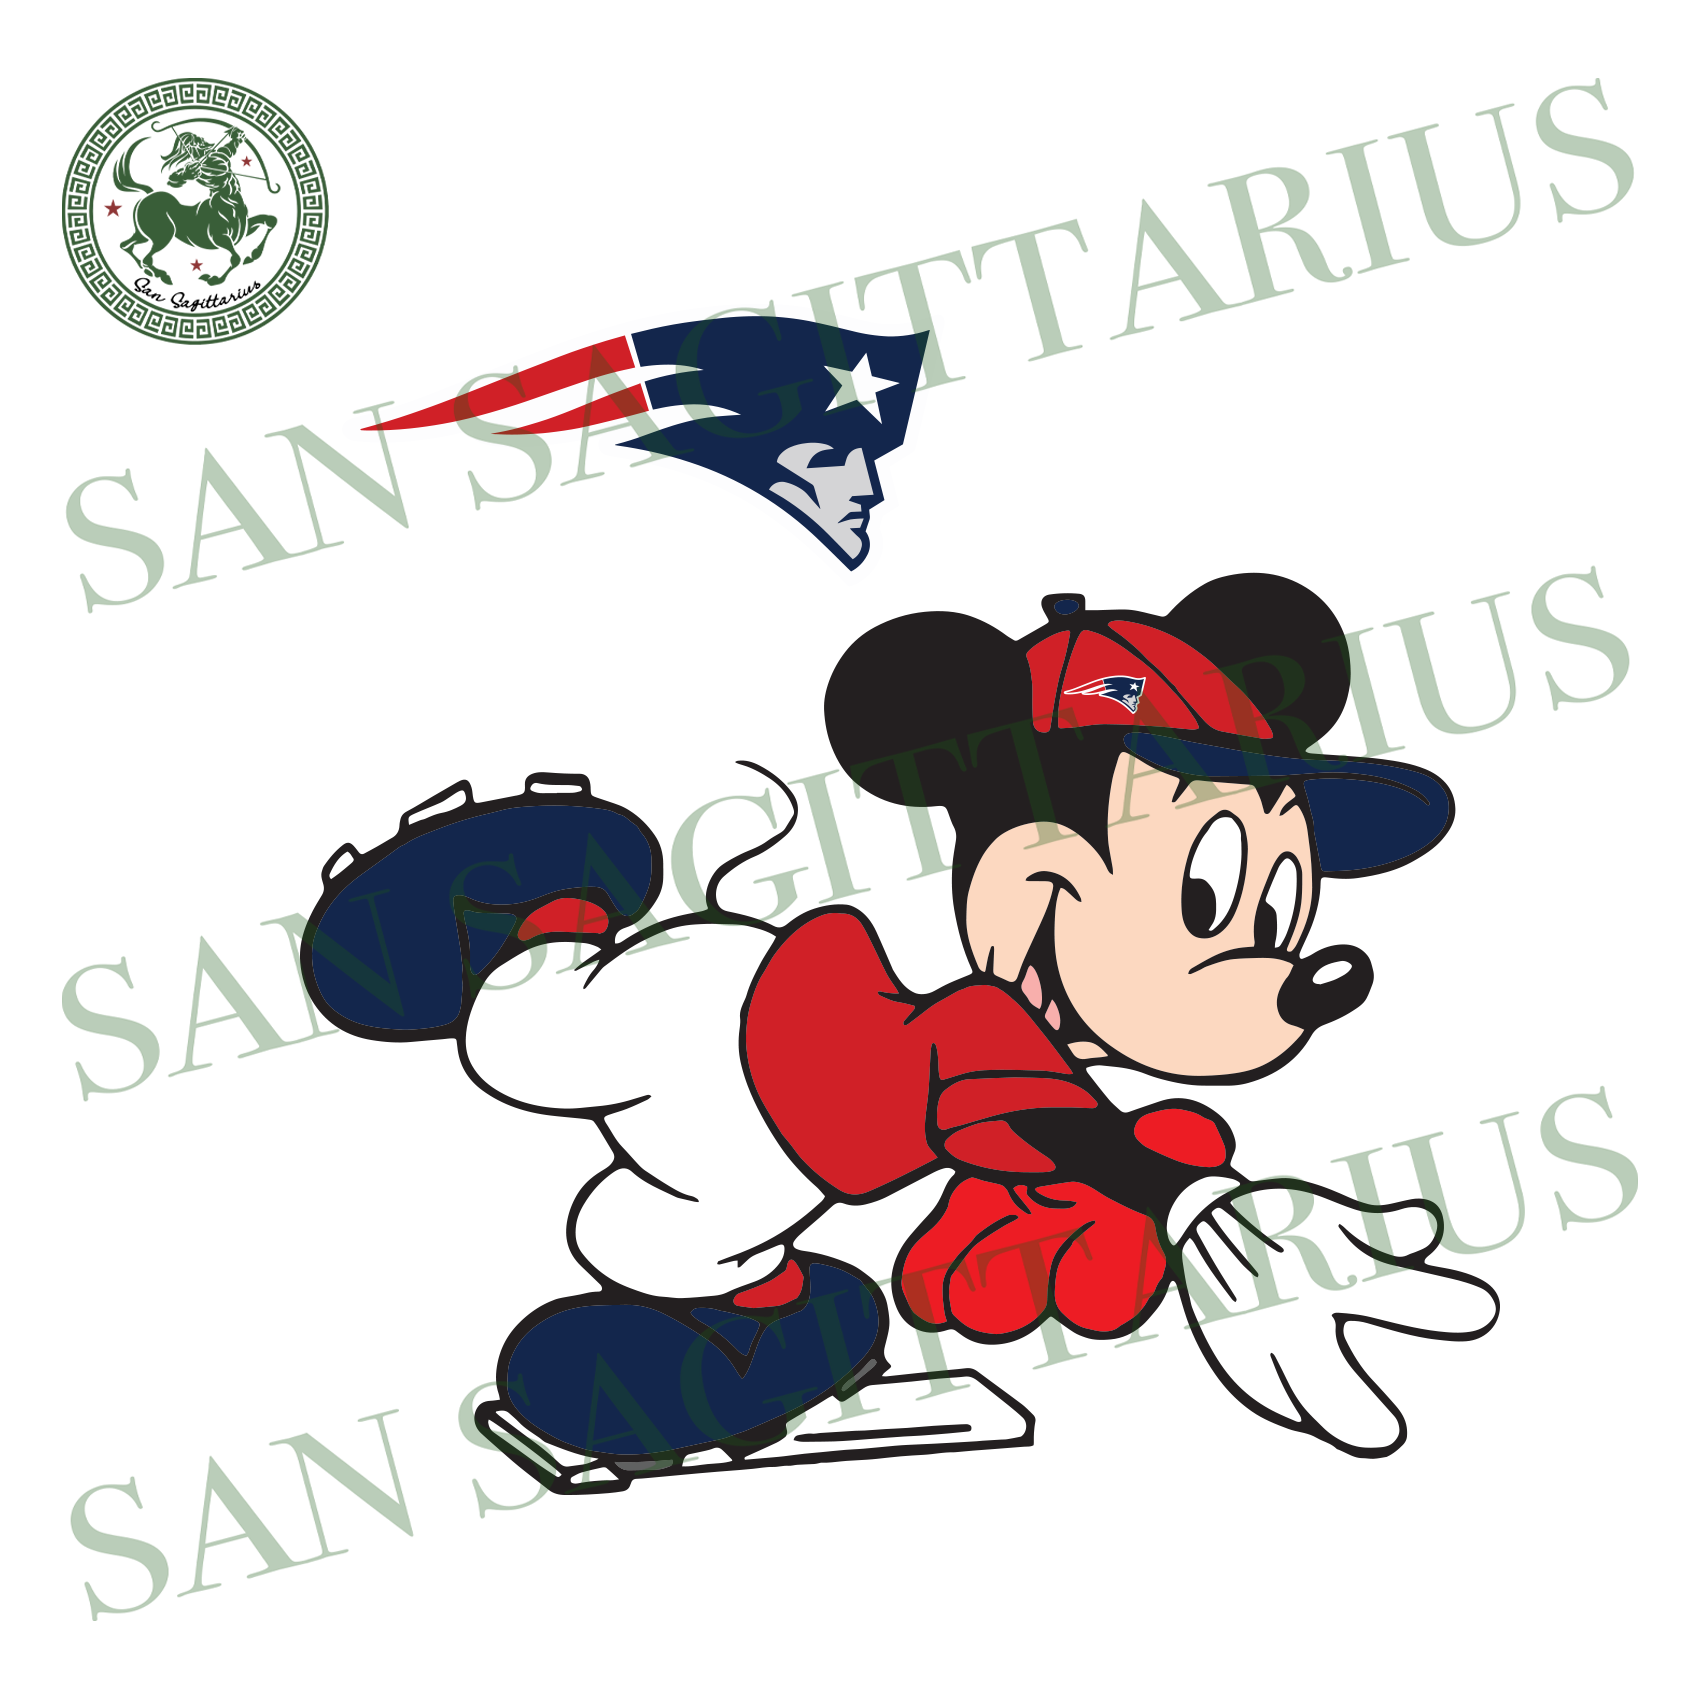 New England Patriots Logo With Mickey, Sport Svg, NFL Football Svg, NFL Svg, NFL Sport, New England Patriots Svg, New England Patriots, New England Patriots NFL Lover, Patriots NFL Svg, Footb